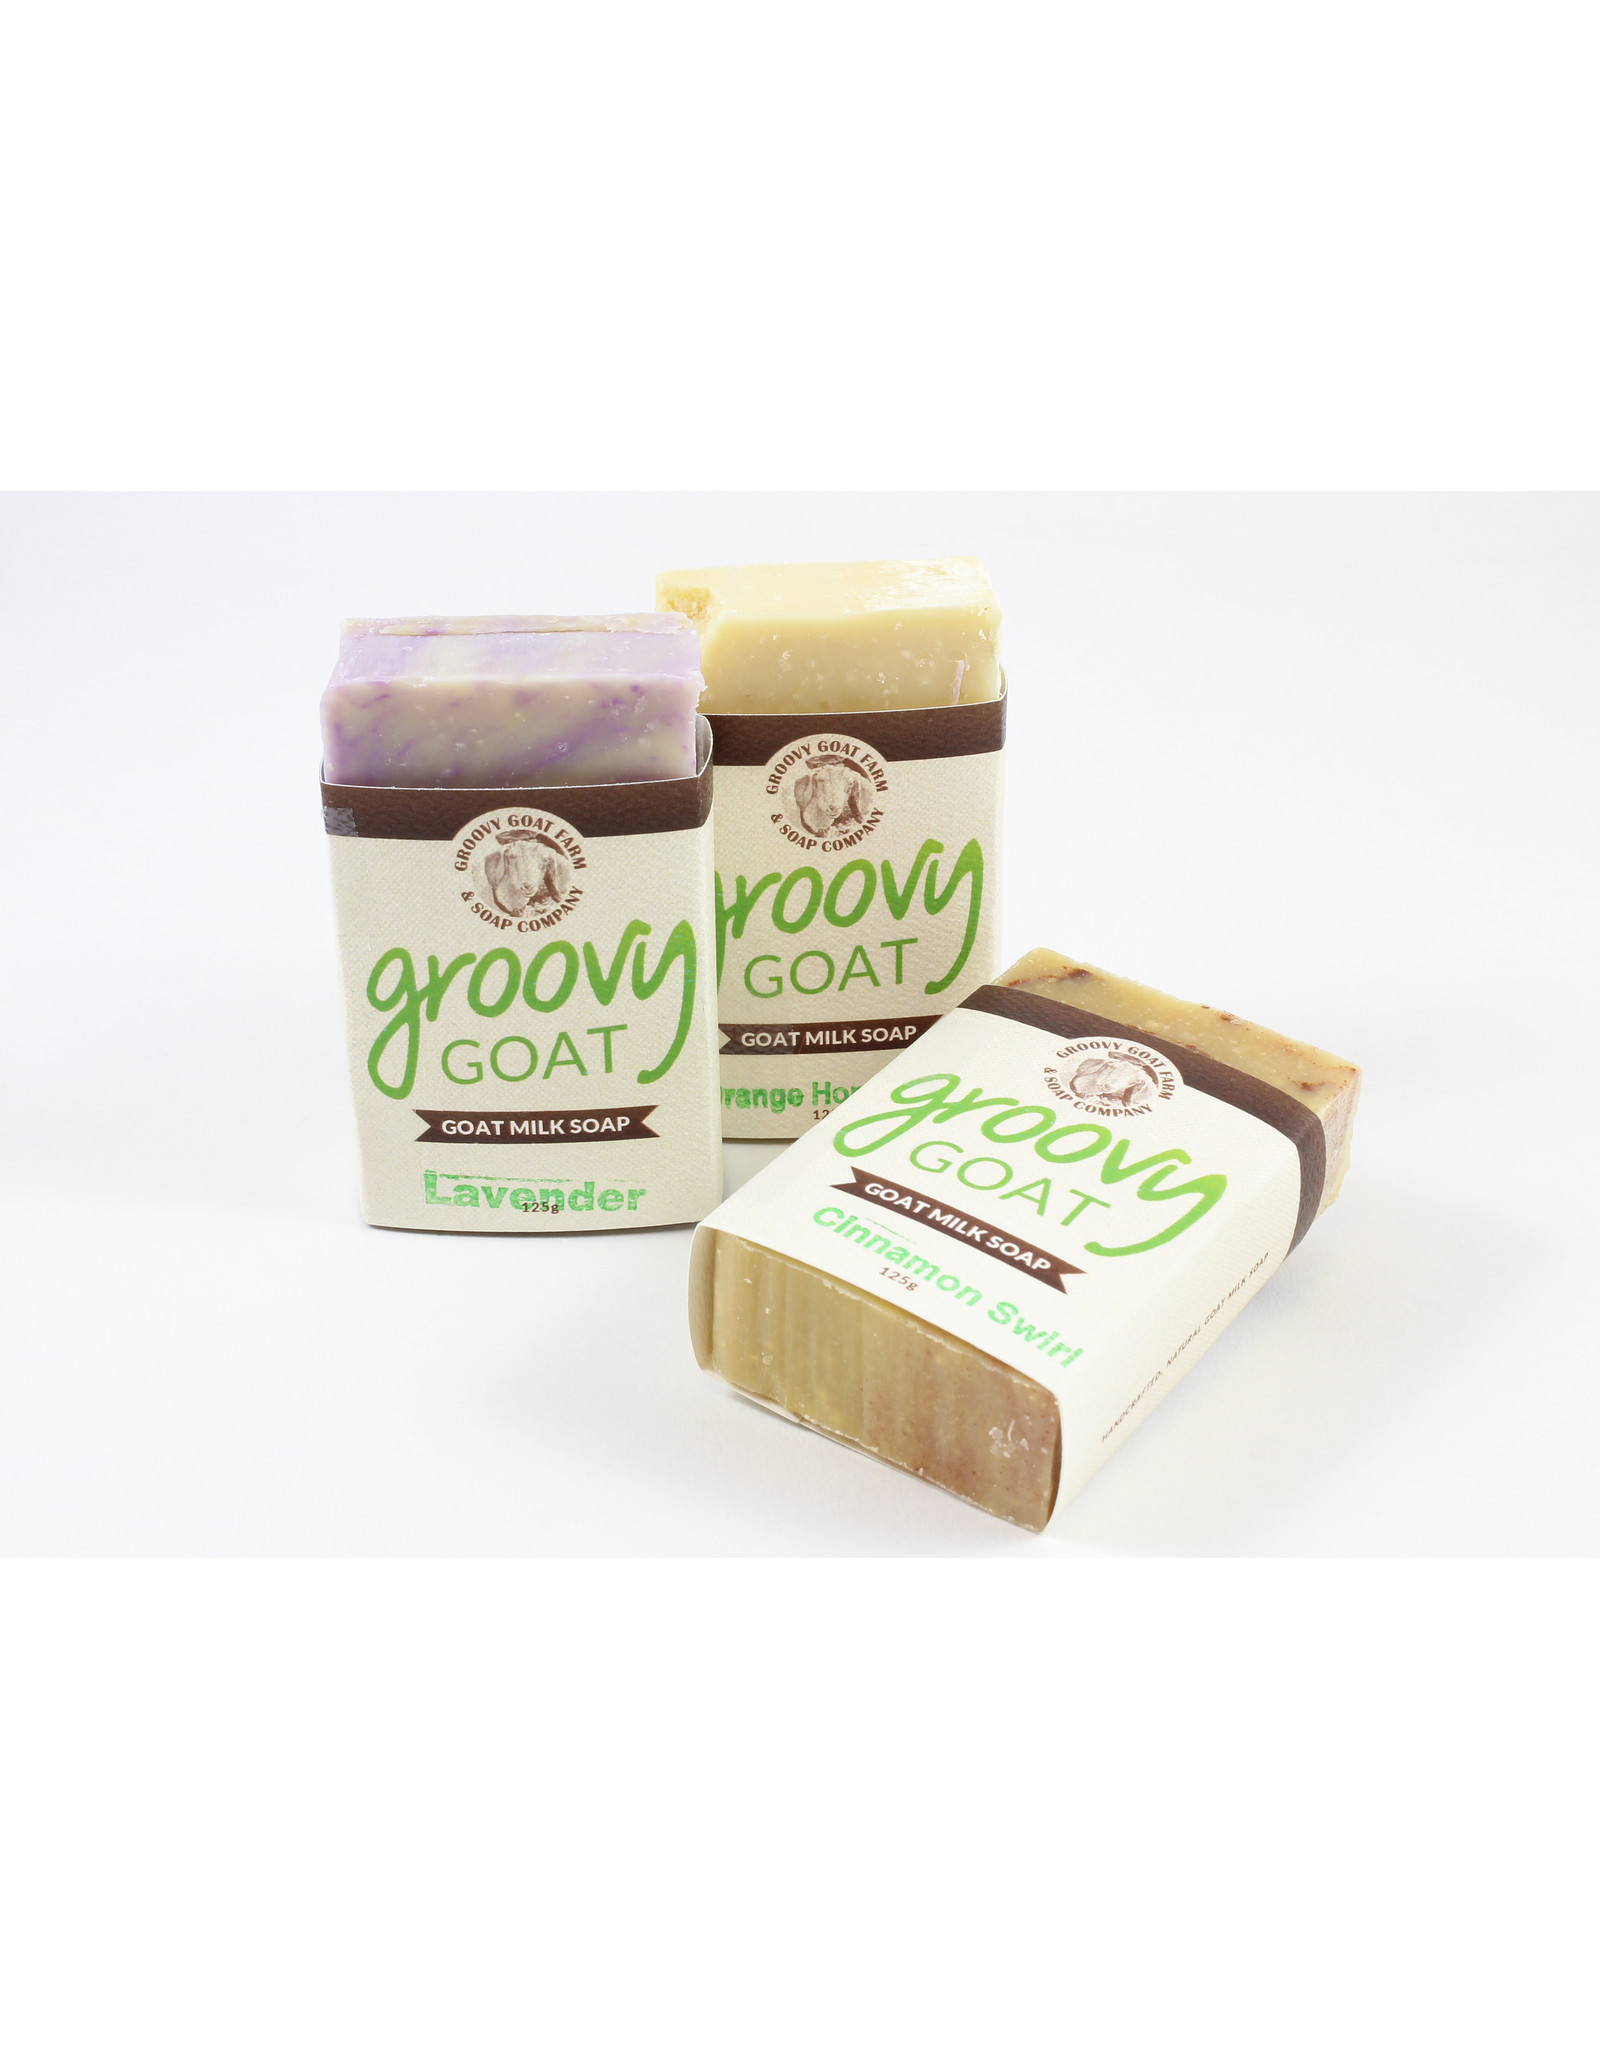 Groovy Goat Goat Milk Soap by Groovy Goat